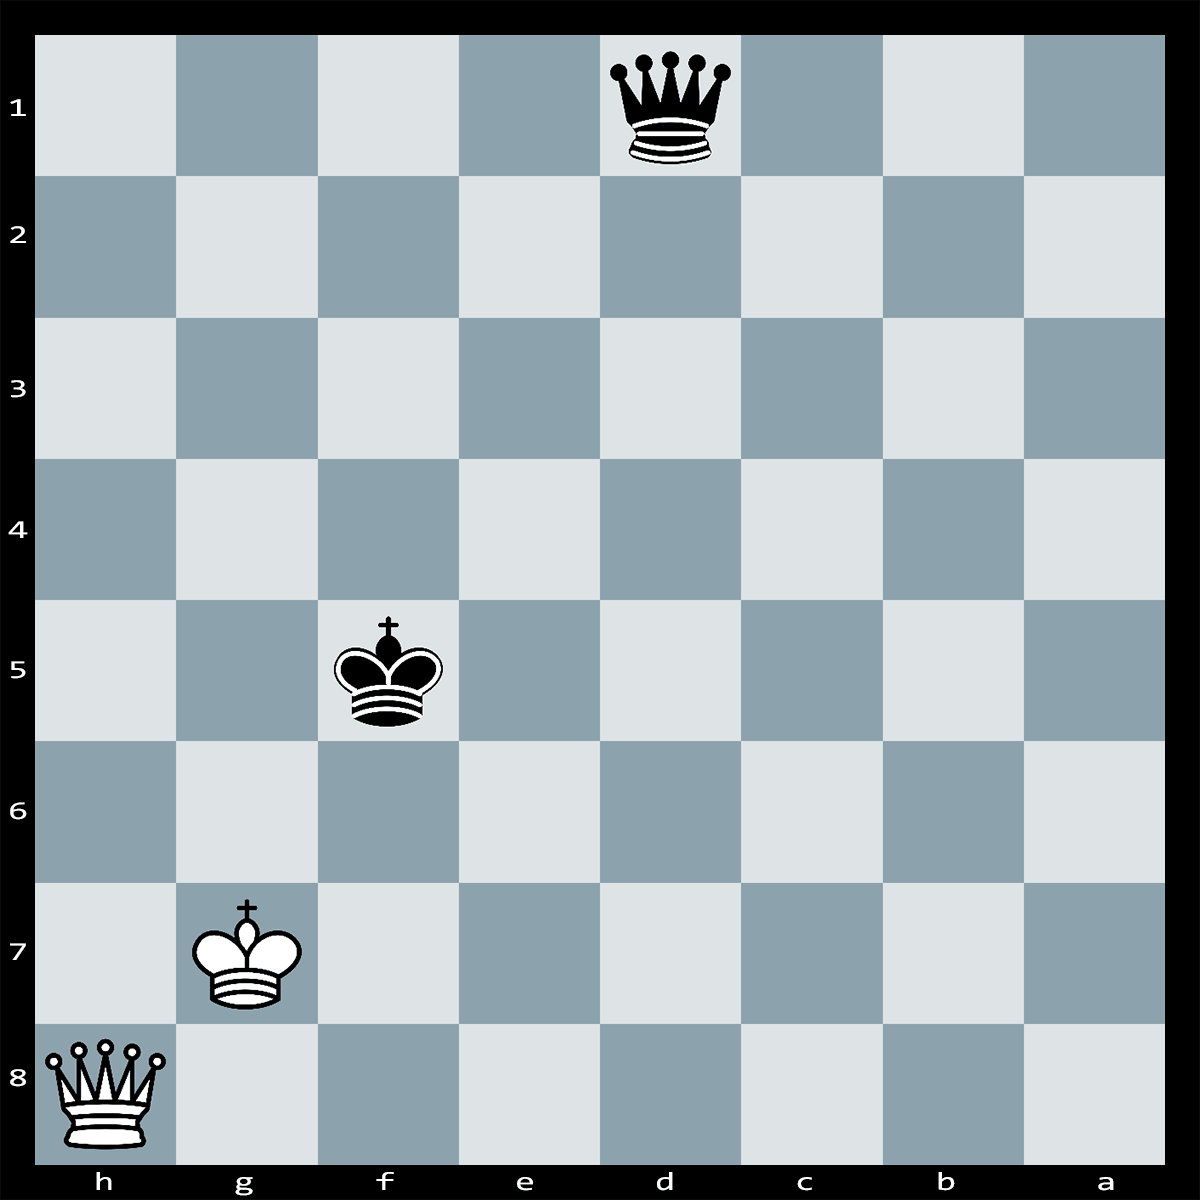 Chess Puzzle #320 Material is level, but it is black who has the move. What should he play?